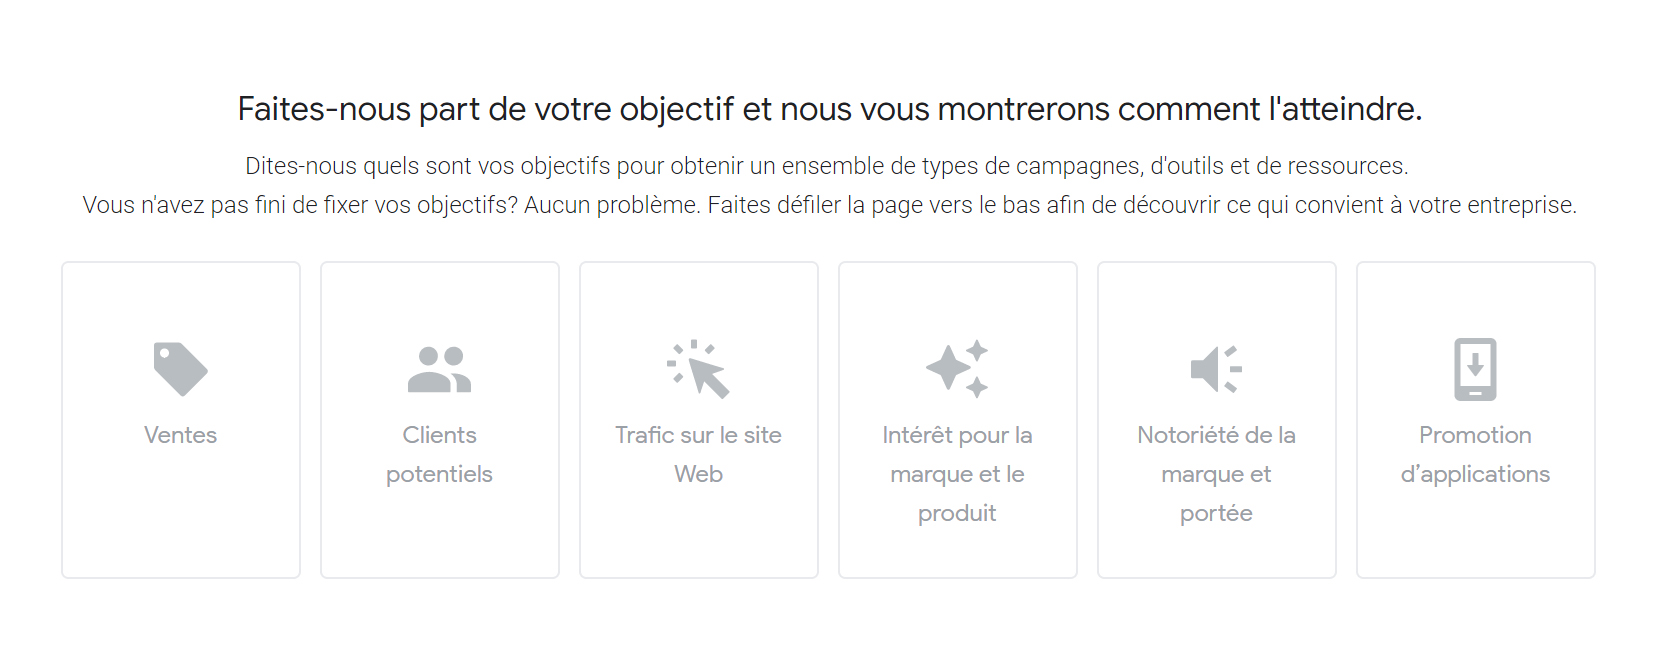 Google, adword, campagne, référencement, SEO, aide, rank